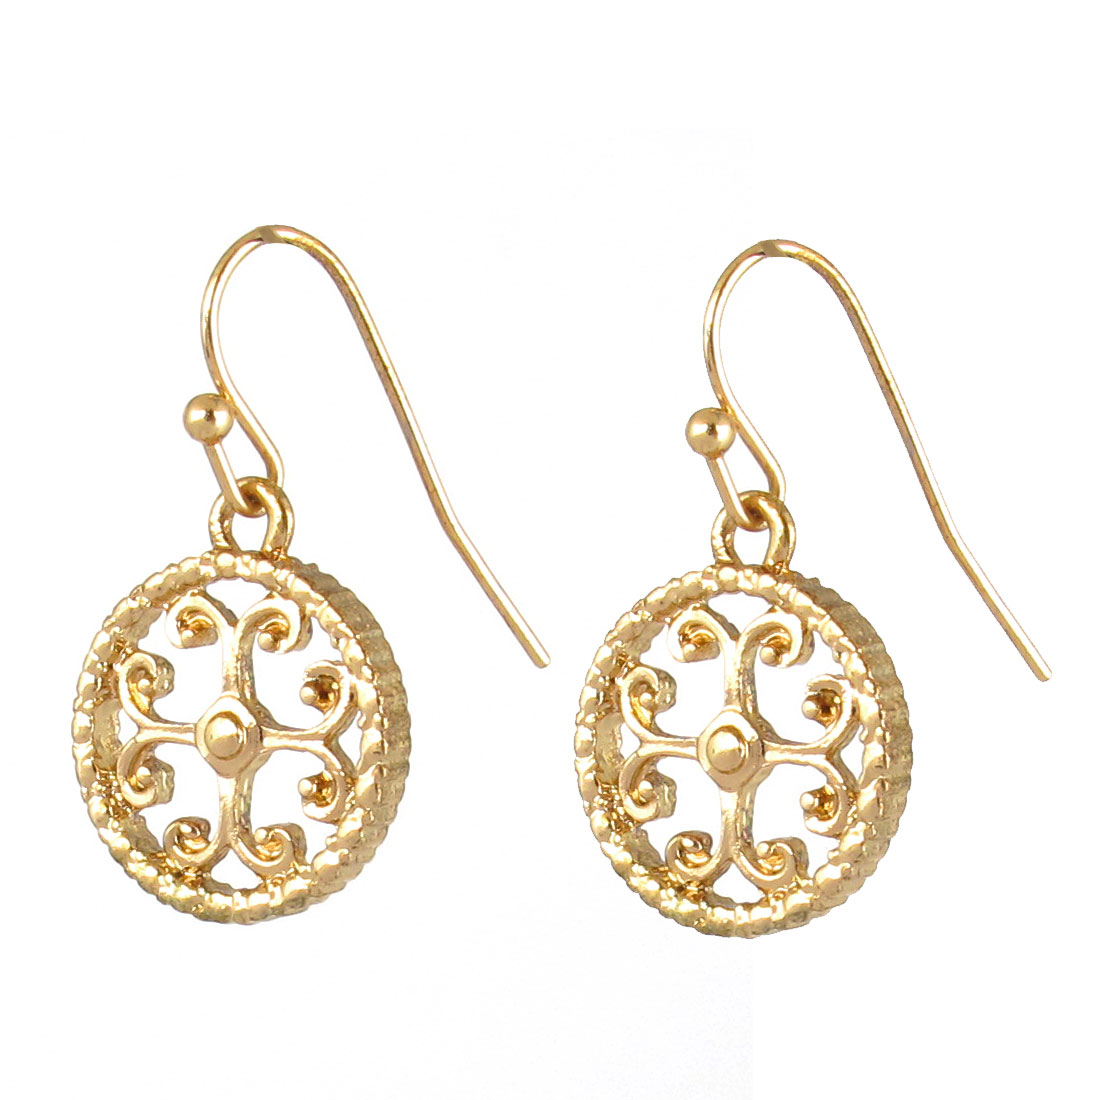 "2"" Length Gold Tone Metal Circle Shape Grass Decor Dangling Pendant Hook Earrings Earbobs Pair for Lady Women"